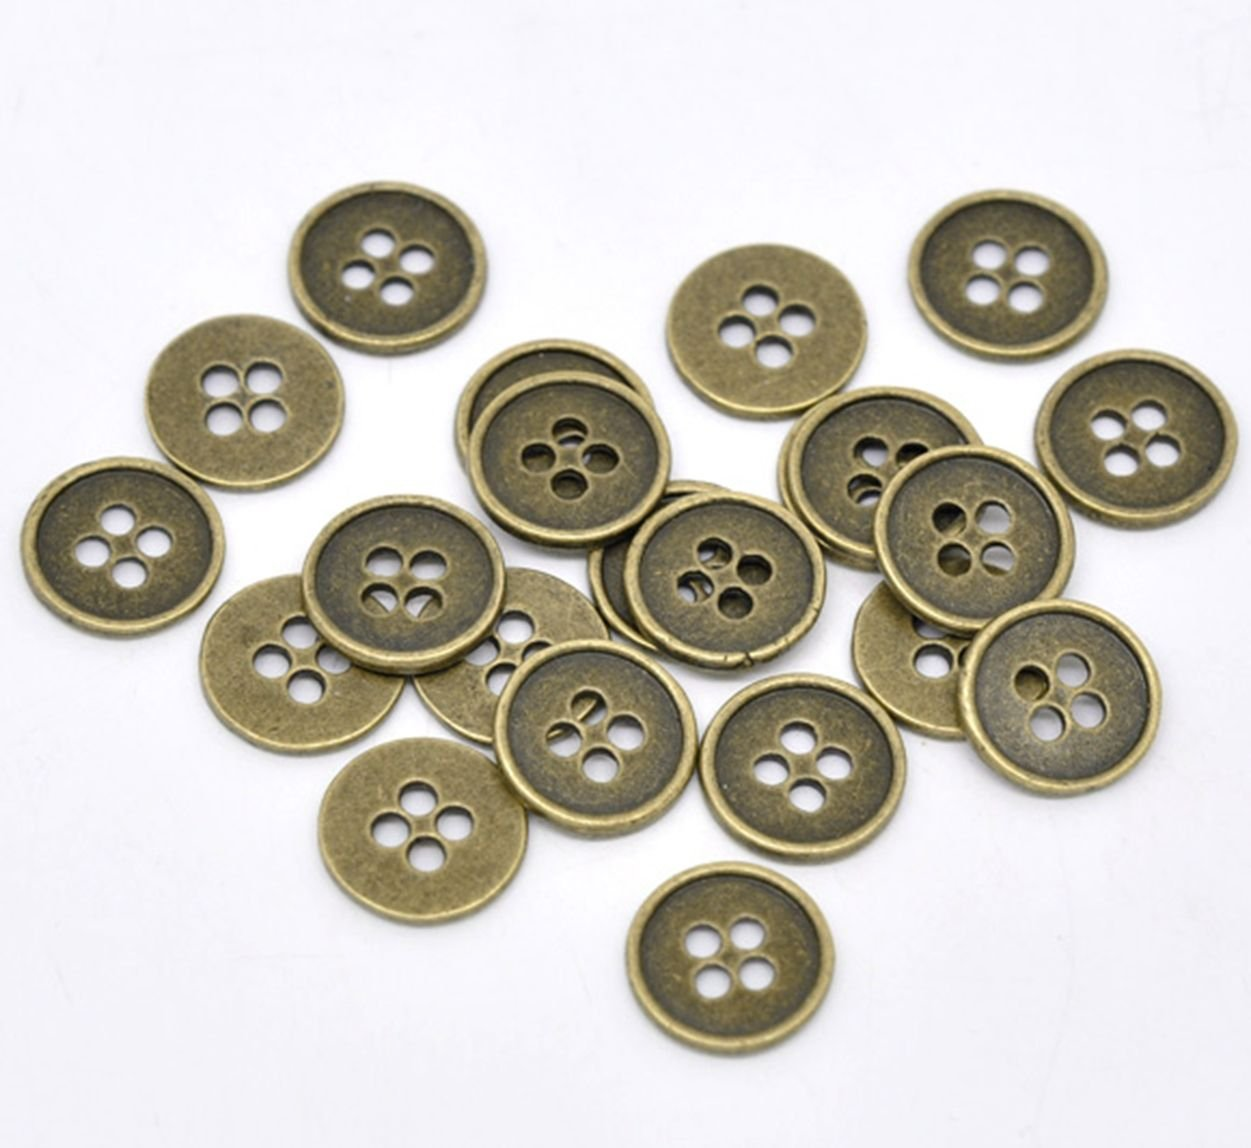 Ideal for Clothes 20 Antique Bronze Vintage Look 13mm Round Metal Buttons Includes 4 Sewing Holes.